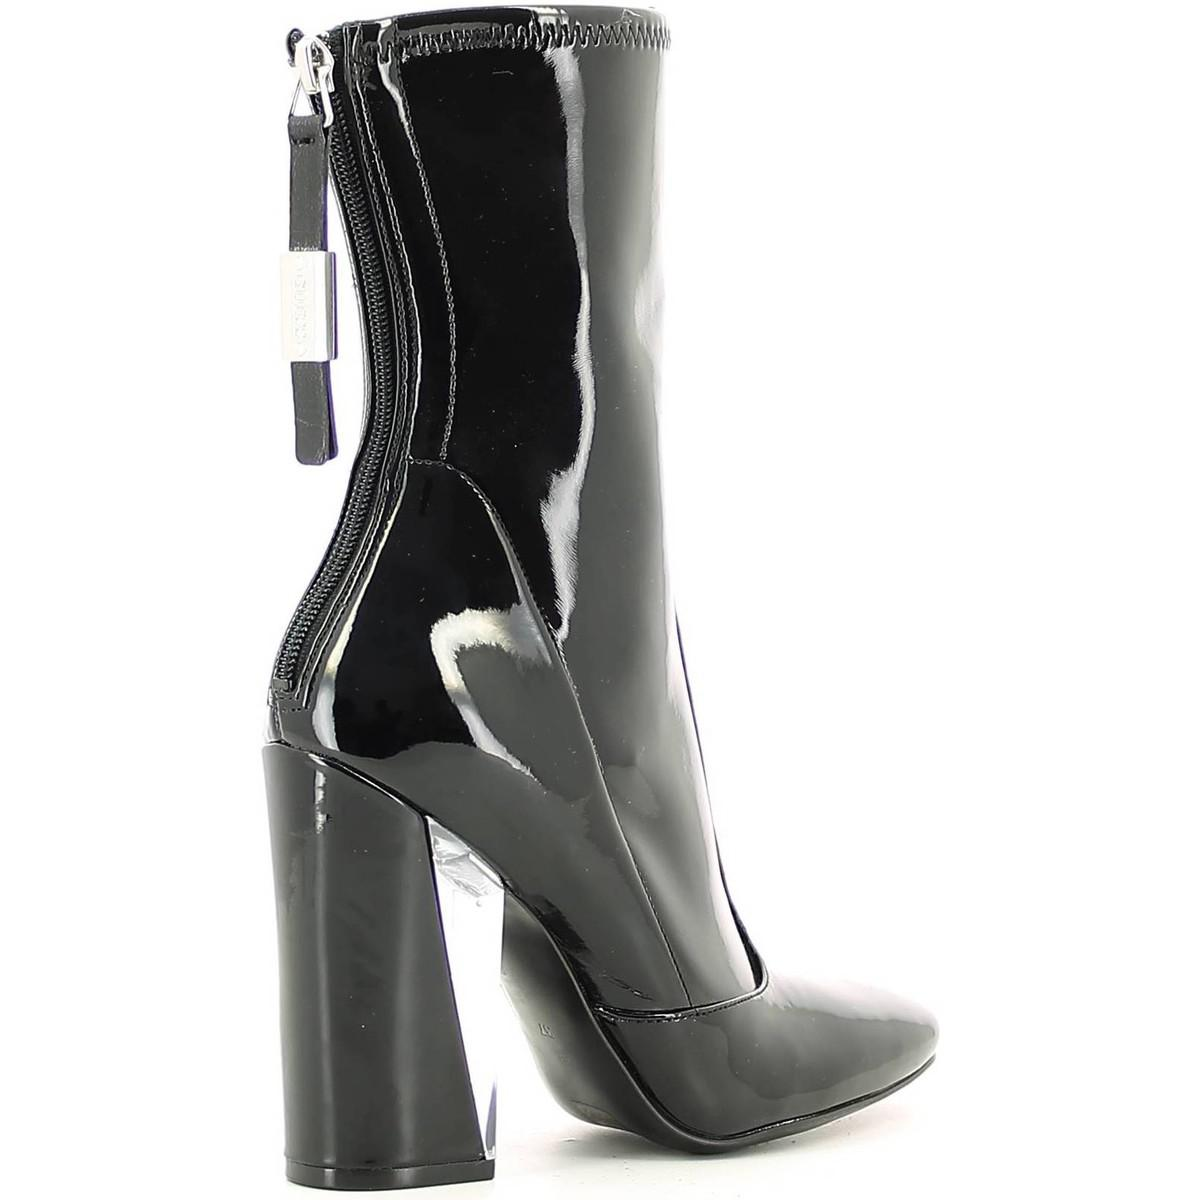 Guess Flexu4 Paf10 Boots Women Black Women's Low Ankle Boots In Black